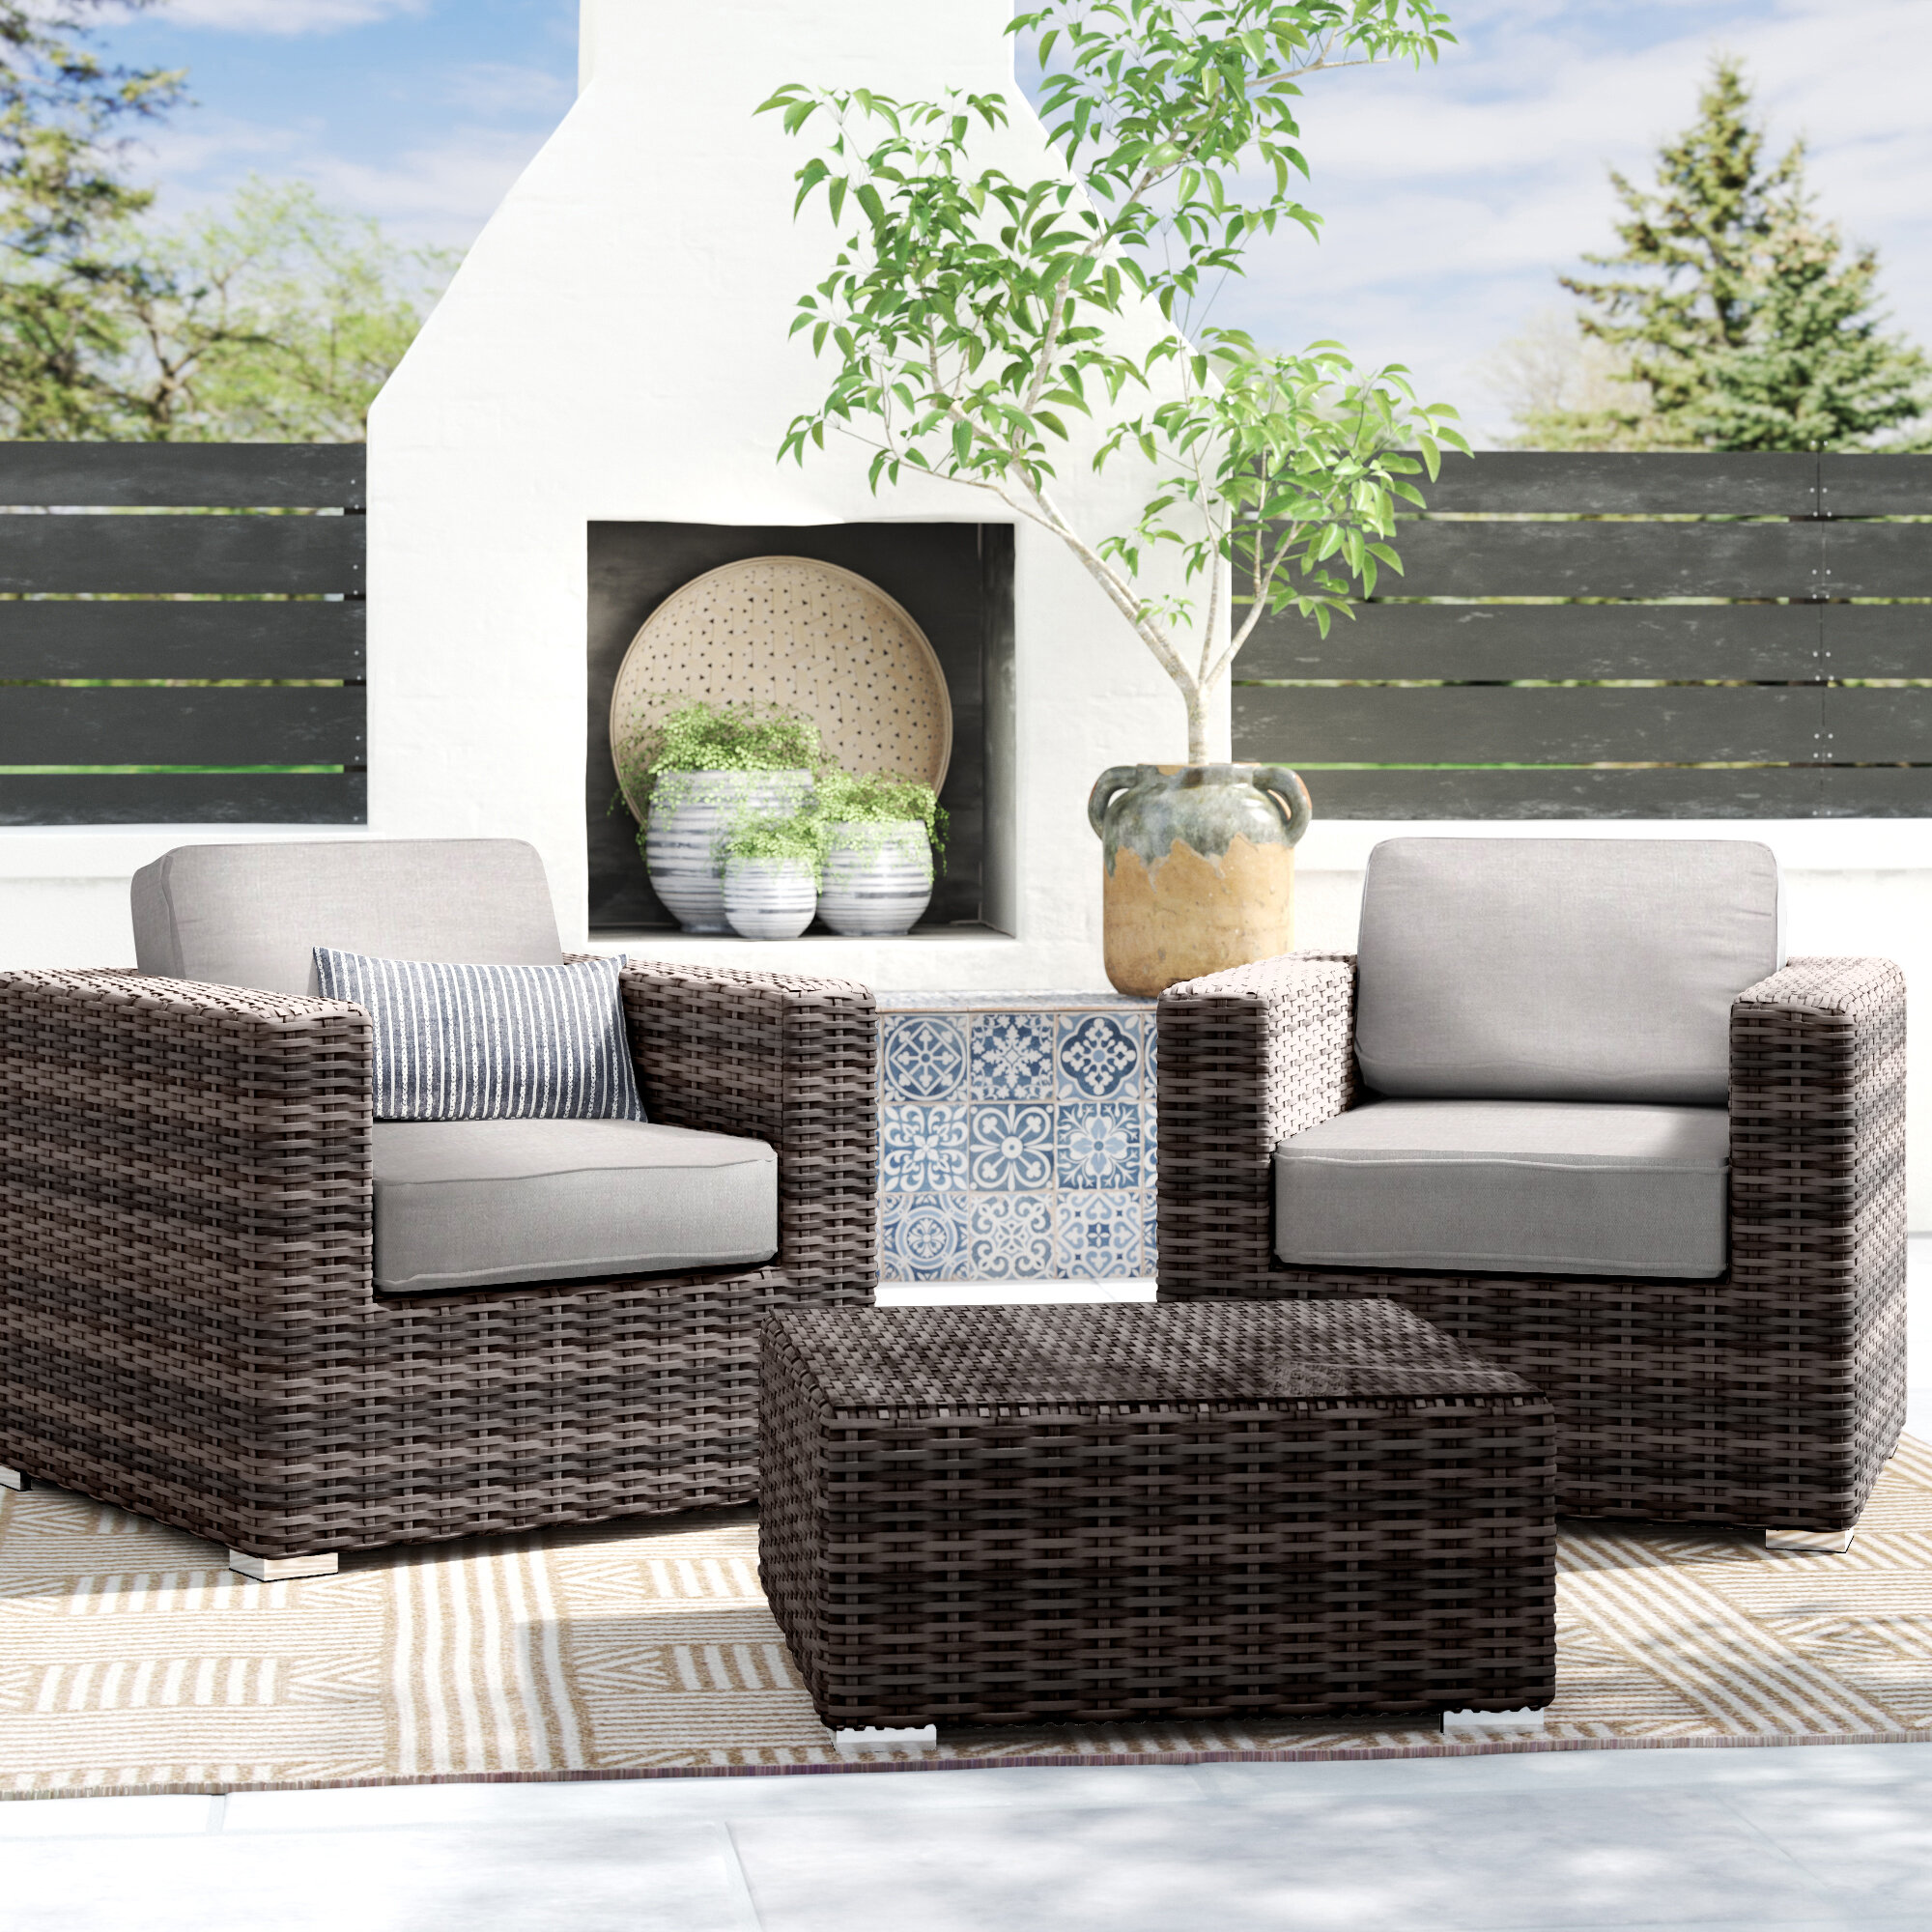 Ravenden Resin Wicker 2 Person Seating Group Reviews Joss Main